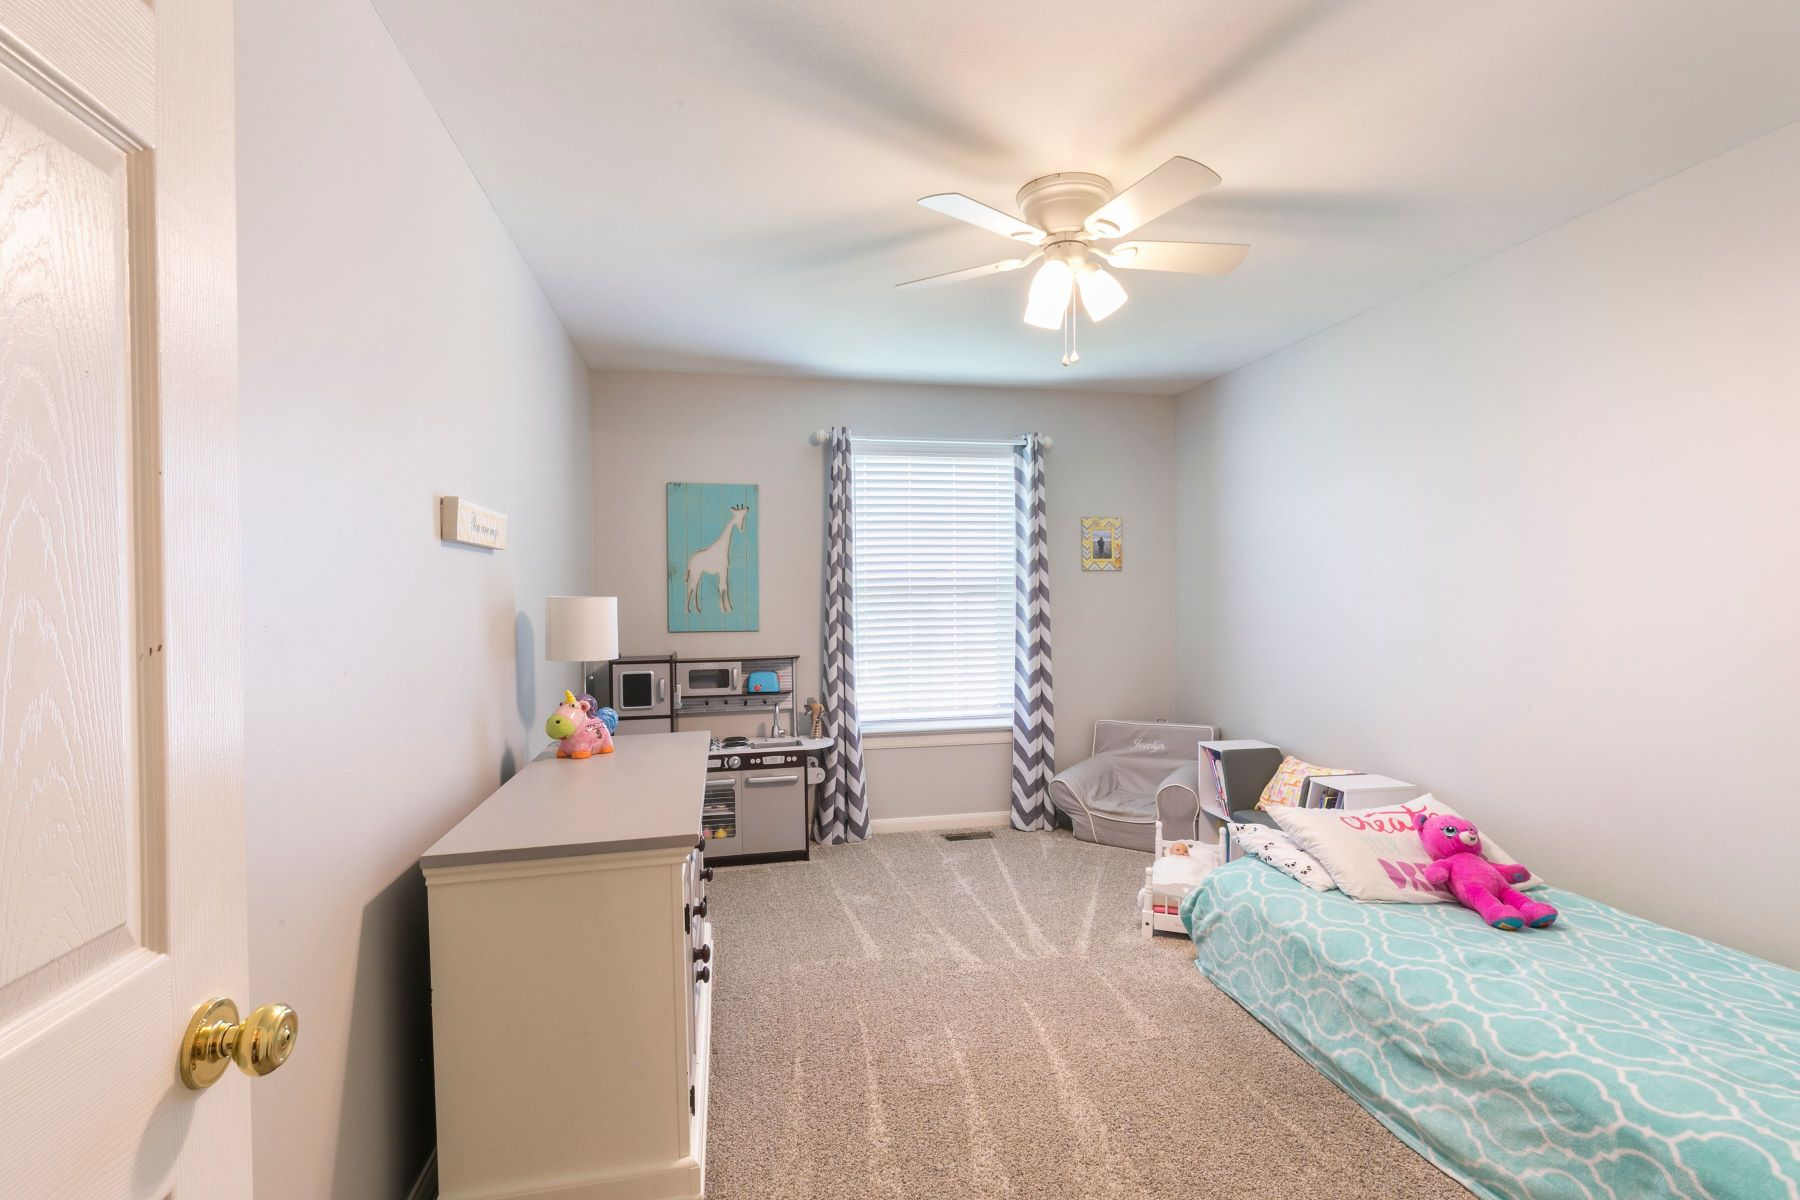 Additional photo for property listing at Golf Course Community 931 Green Briar Hills Drive O Fallon, Missouri 63366 United States